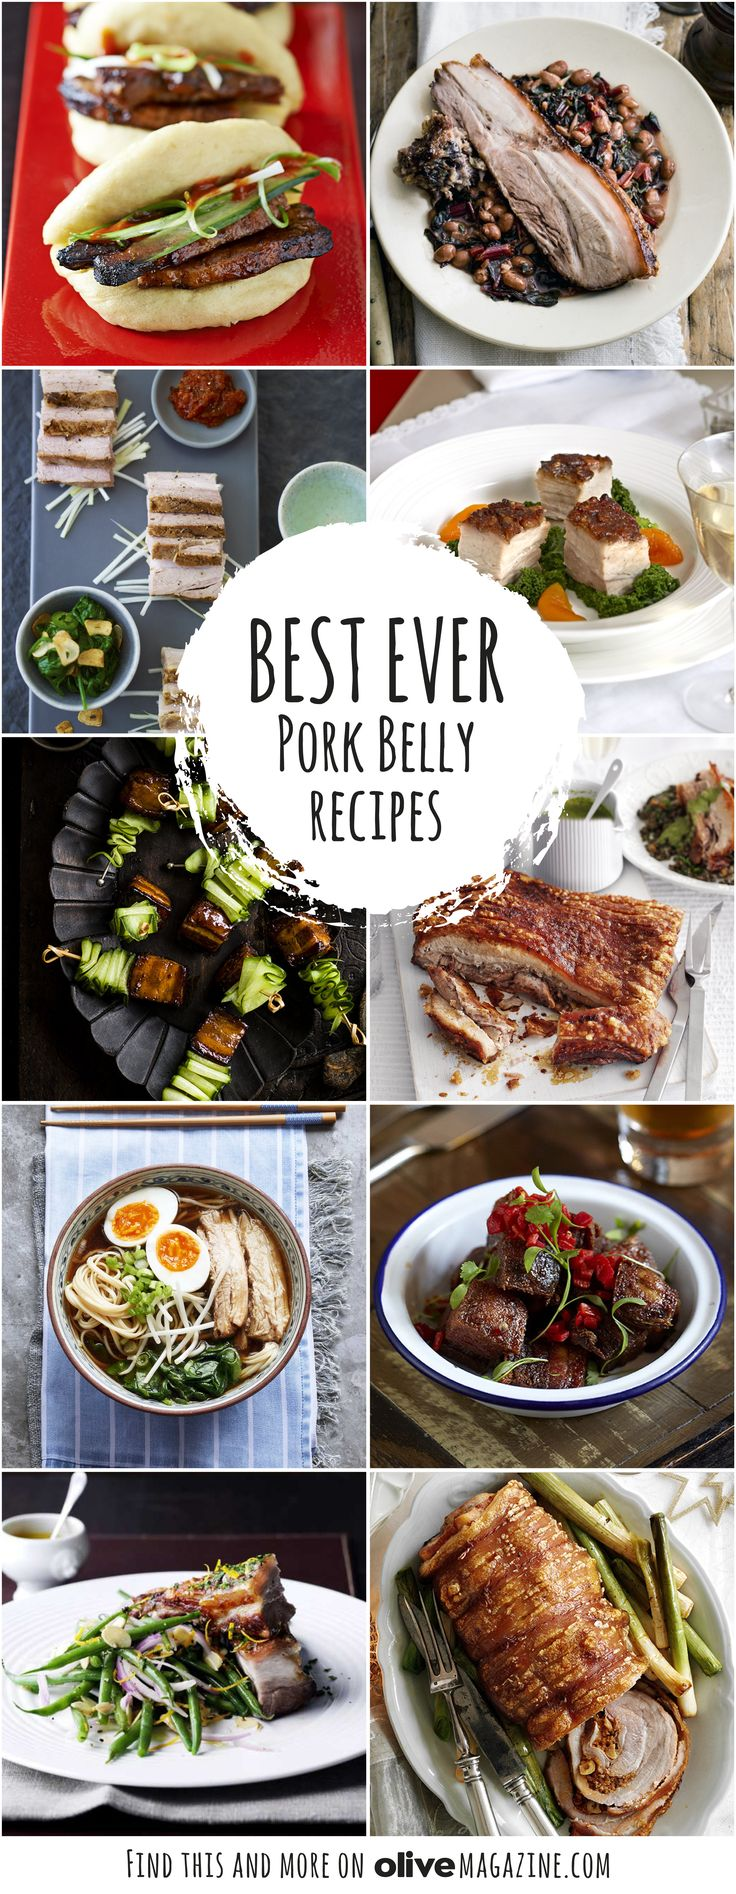 Easy on the wallet and just as simple to make, try one our 14 best ever pork belly recipes. Roast it, braise it, fry it - the choice is yours